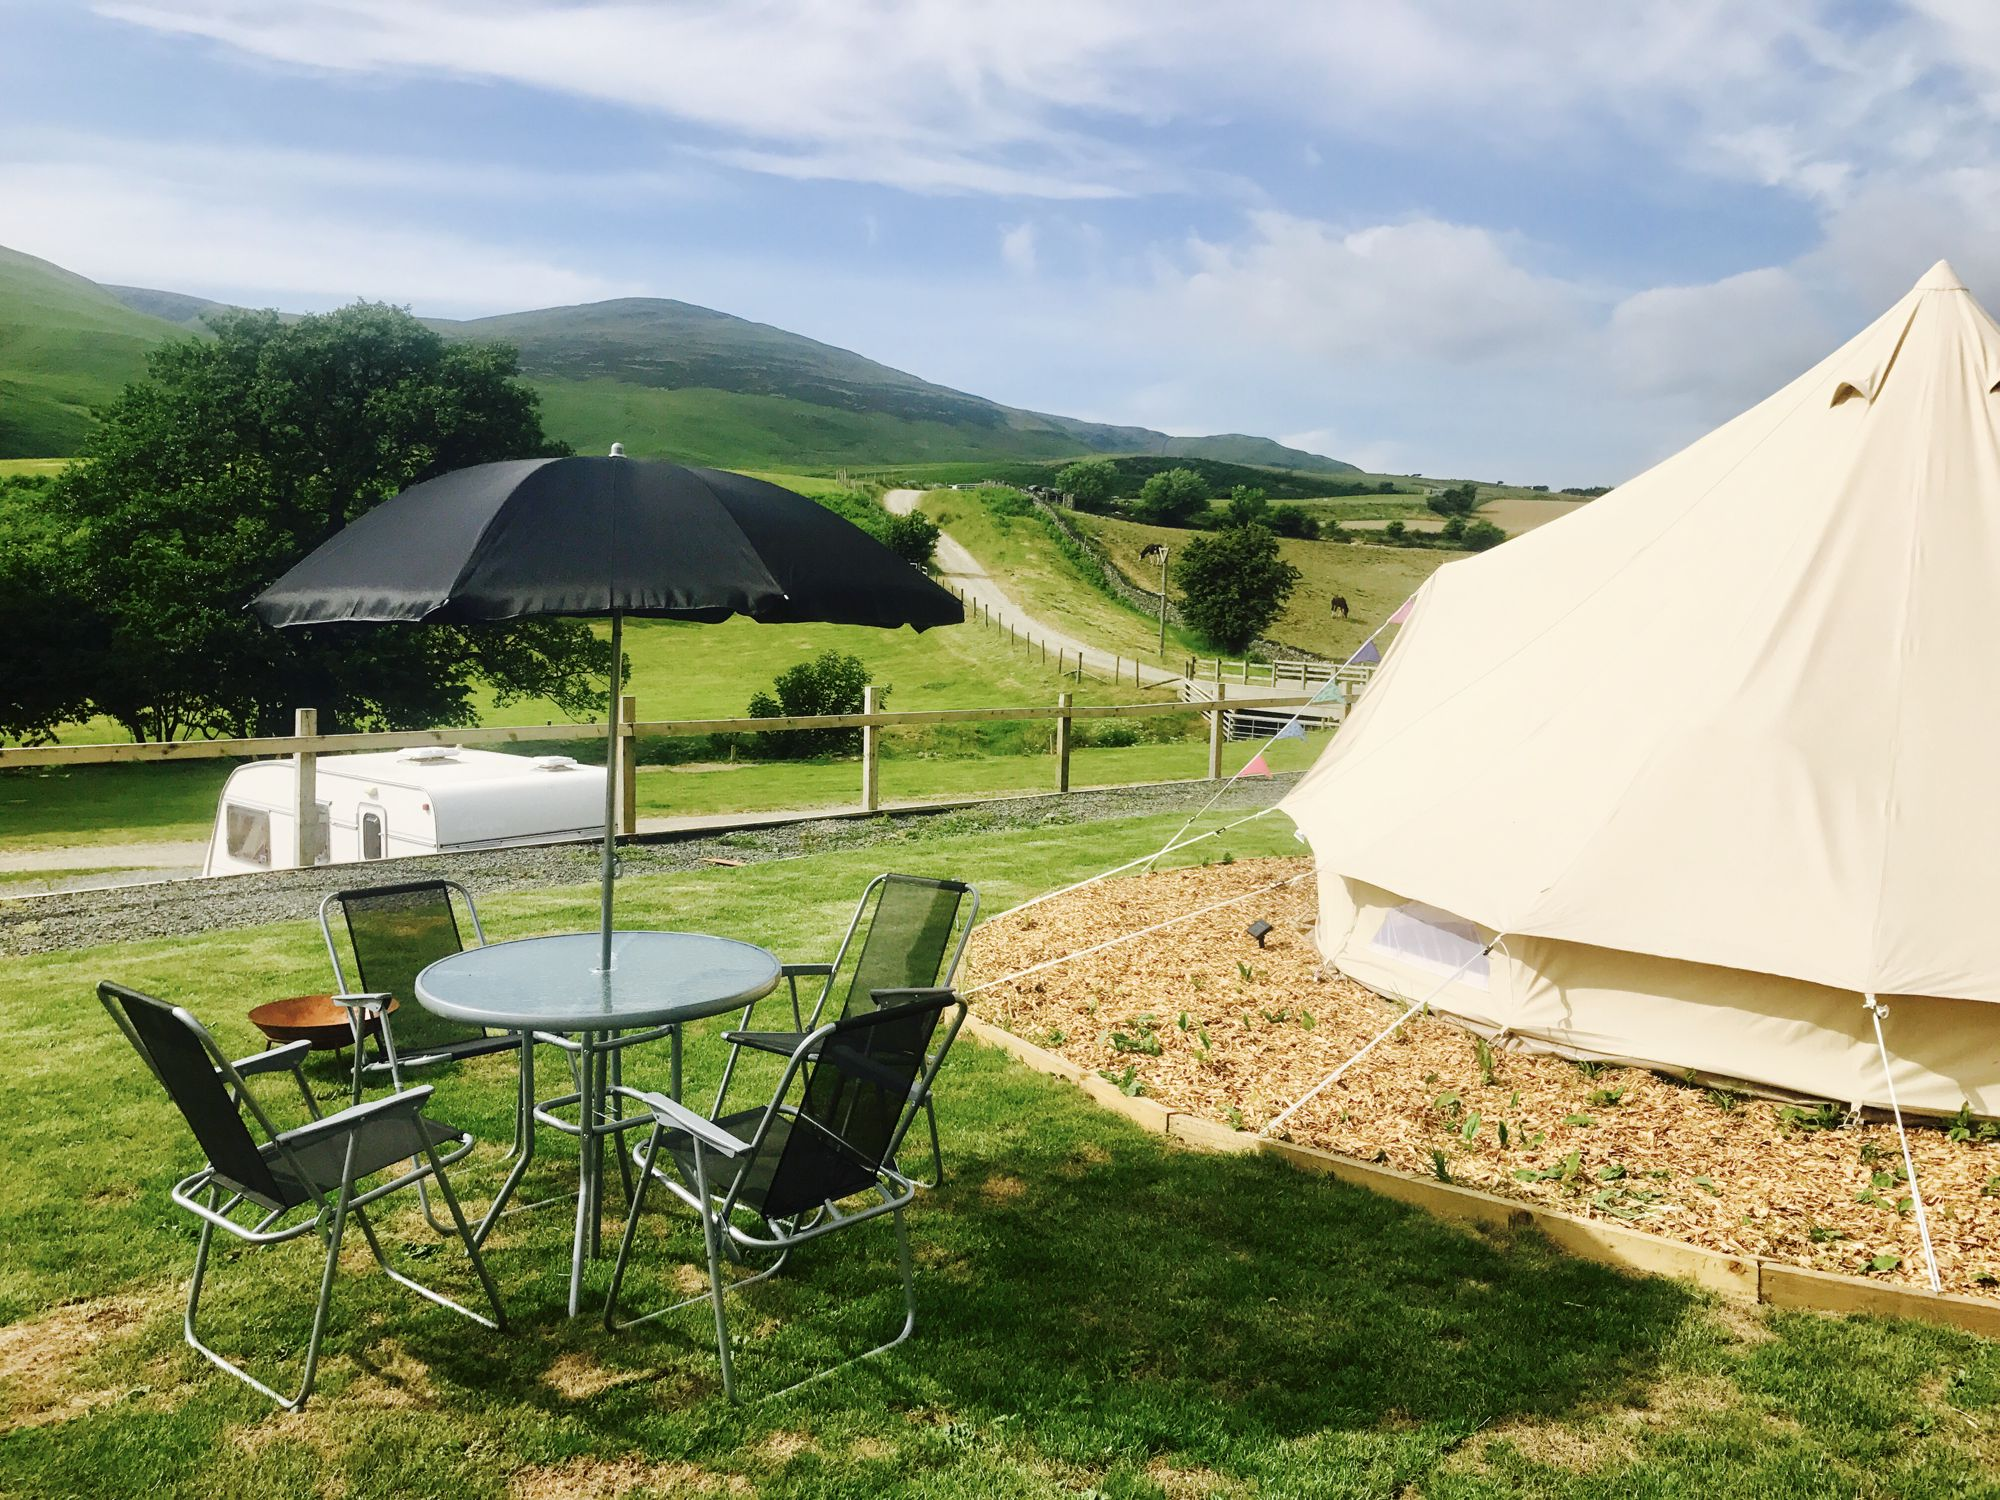 Lake District Glamping - Glamping in the Lake District, Cumbria from Glampingly